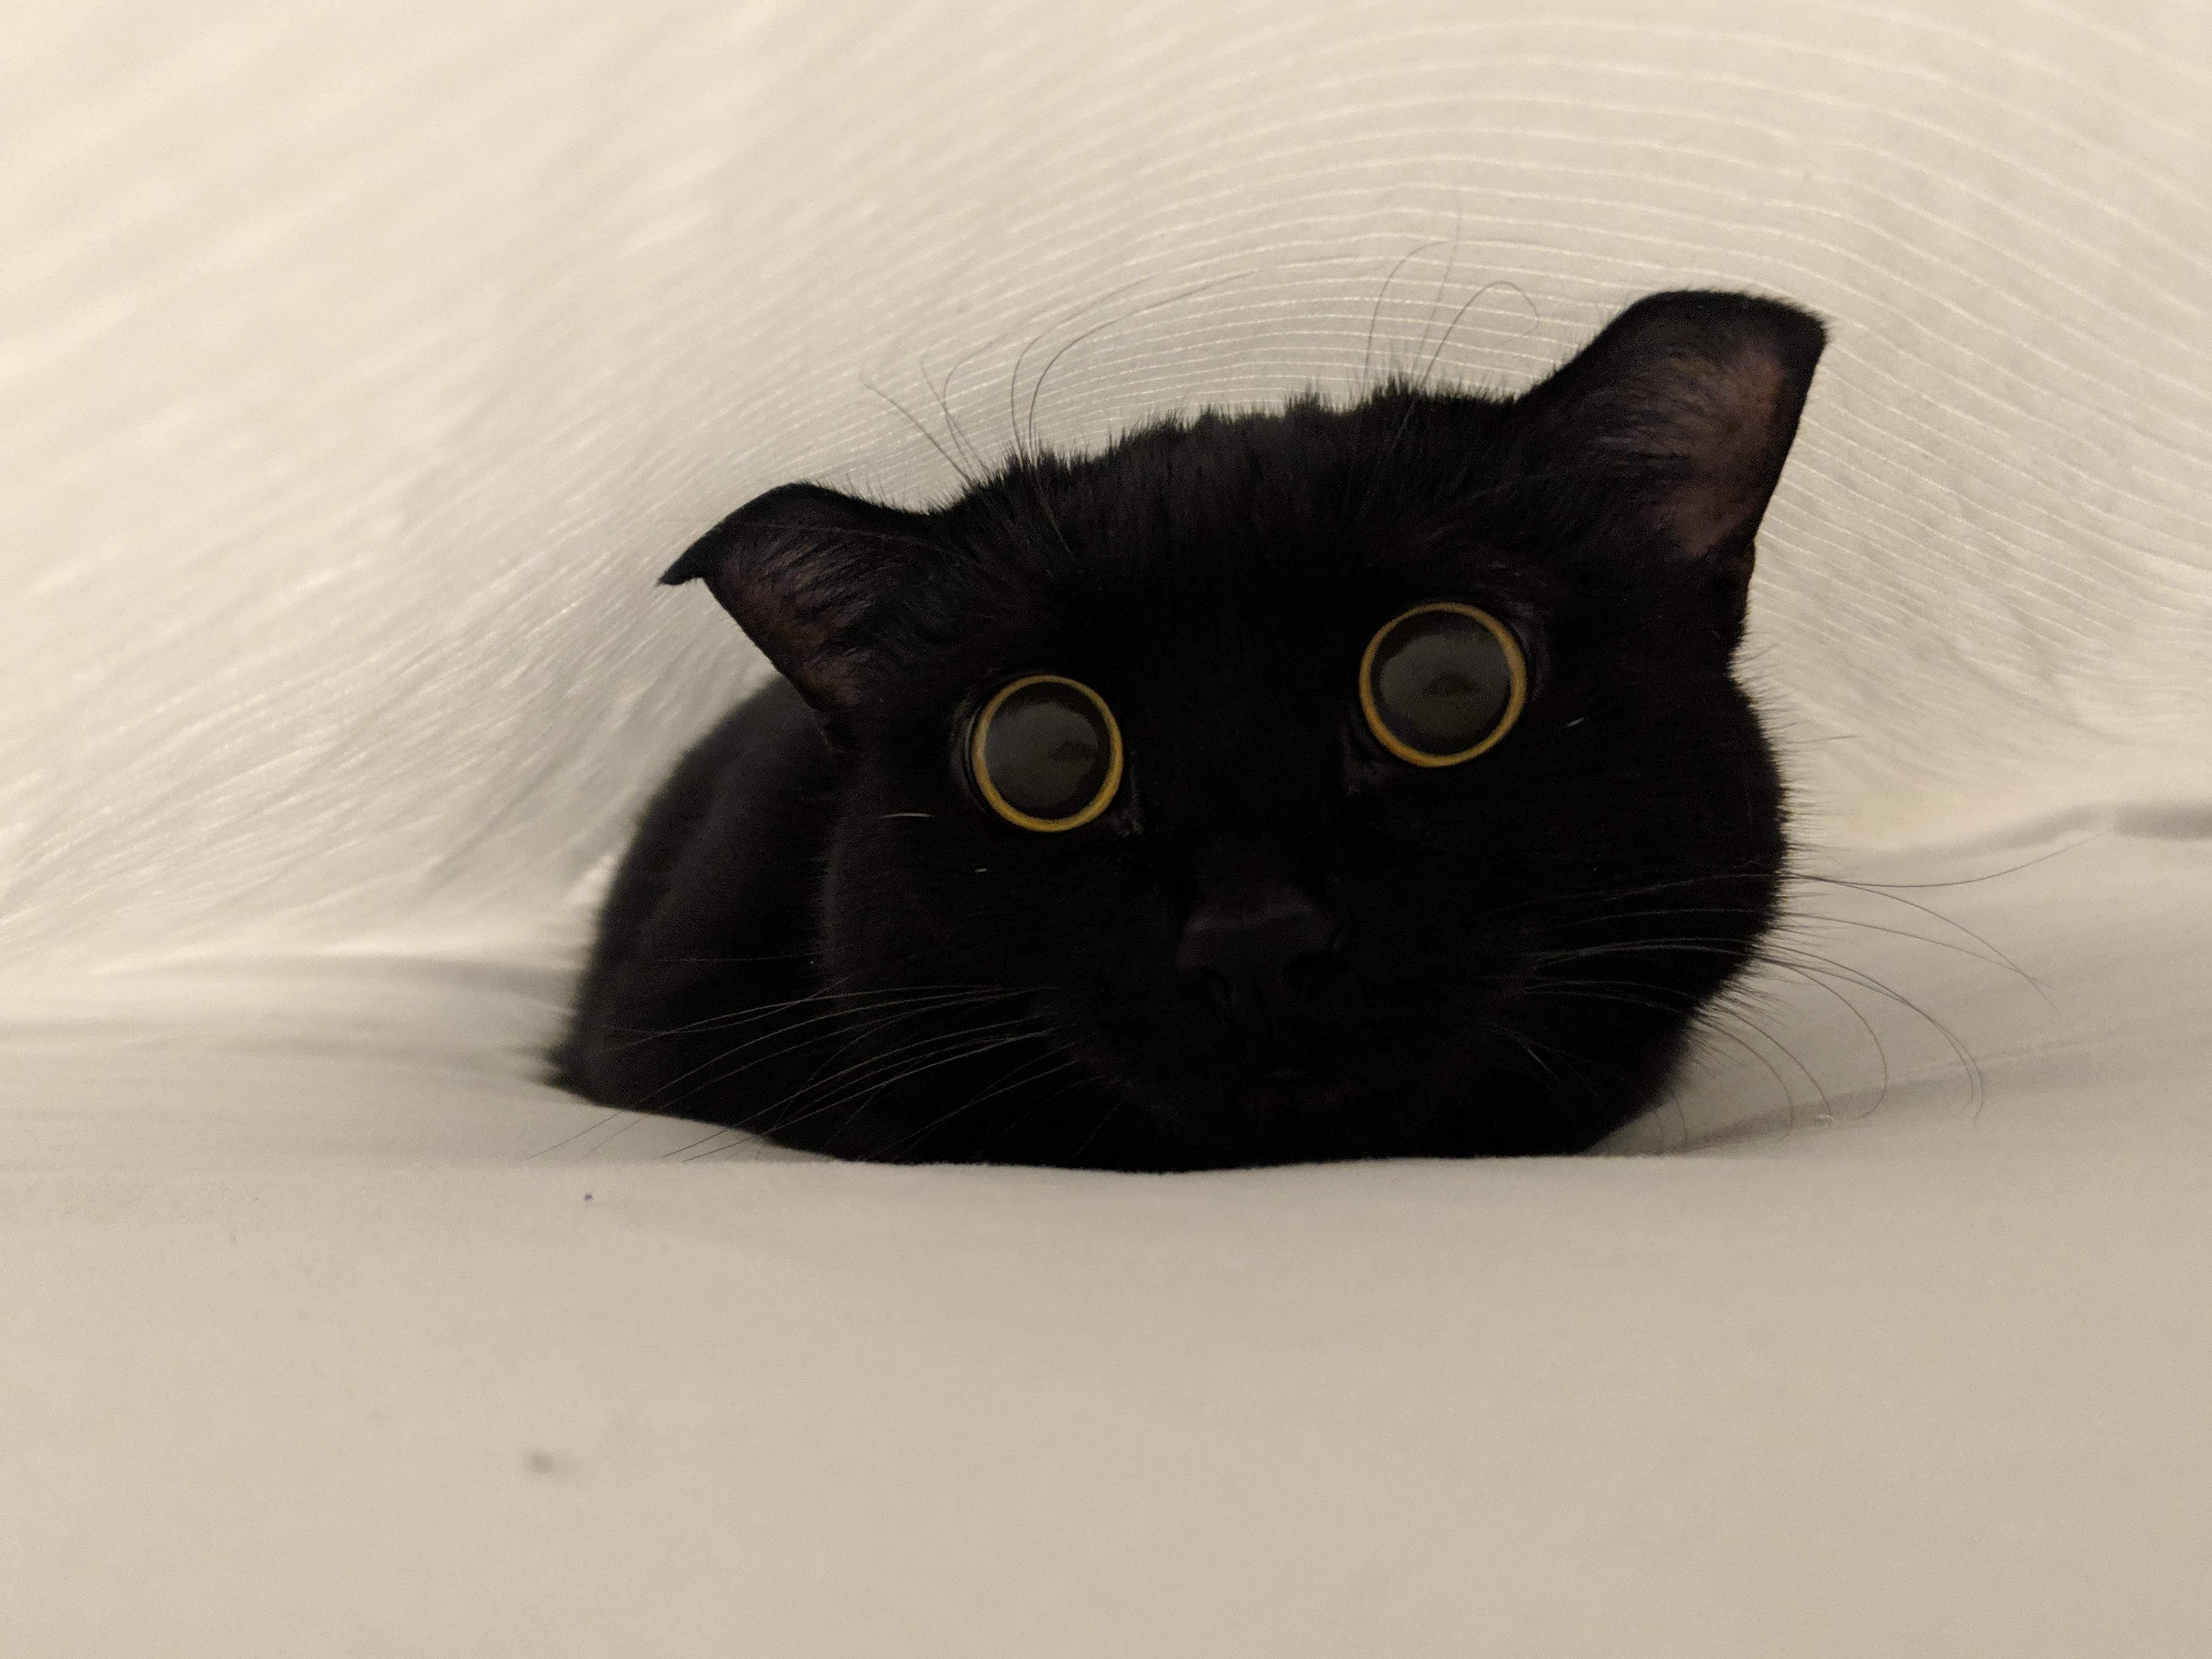 Luna thinks hiding under the sheets while I make the bed